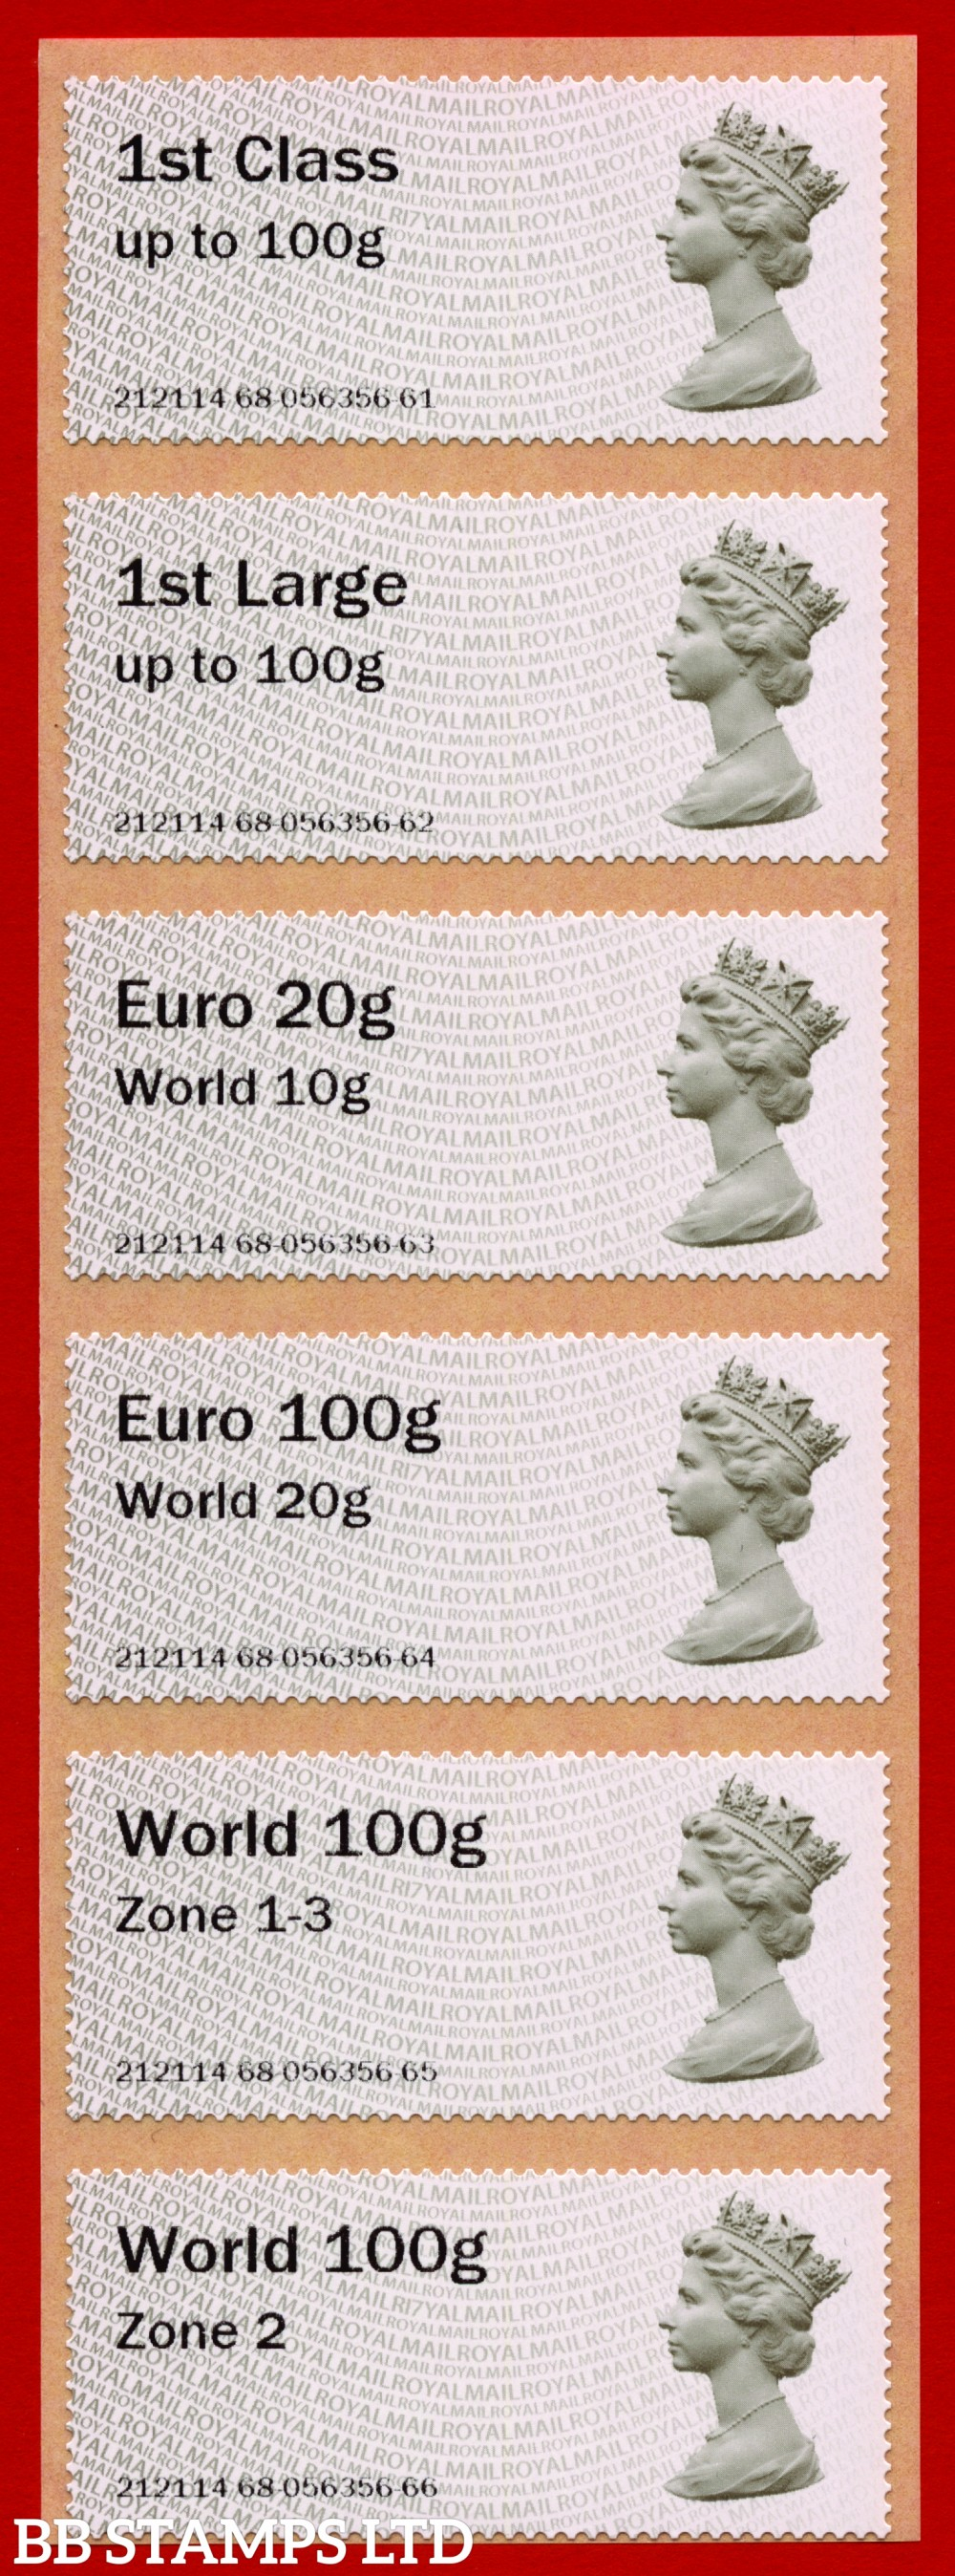 Machin (TIIA), set of 6 with 01/09/20 new overseas stamps: 1st/1stL/Euro 20g World 10g, and 3 new values: Euro 100g World 20g, World 100g Zone 1-3 and World Zone 2: with R17Y year code (BK30 P10)